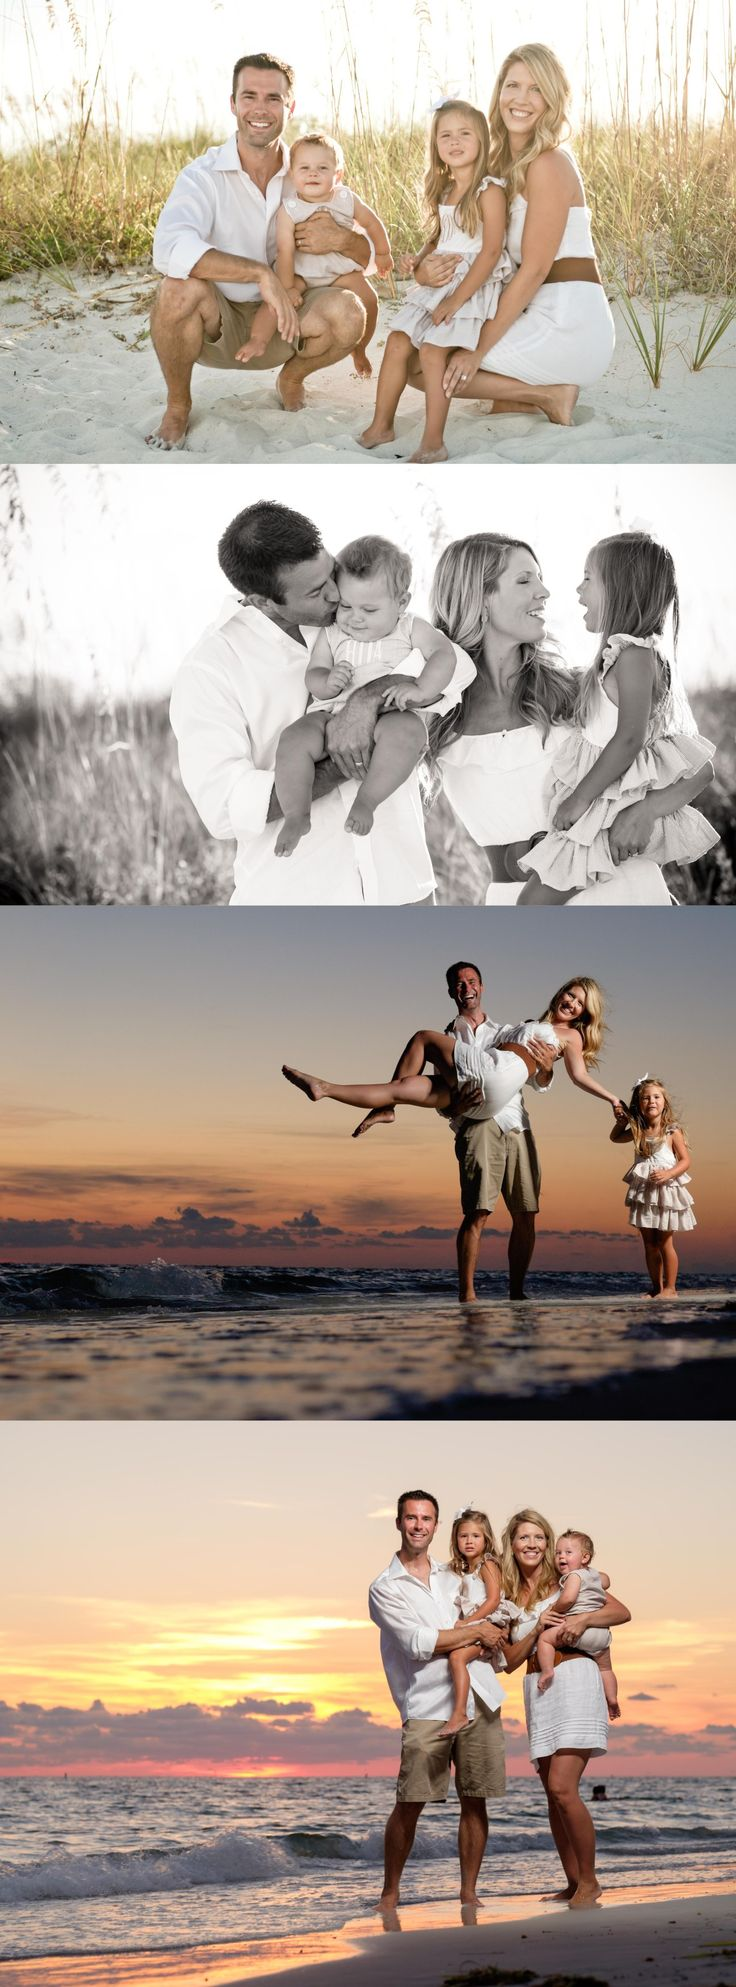 Florida Beach Family Portraits by Treasure Island St Pete Beach Photographer Kristen Sloan